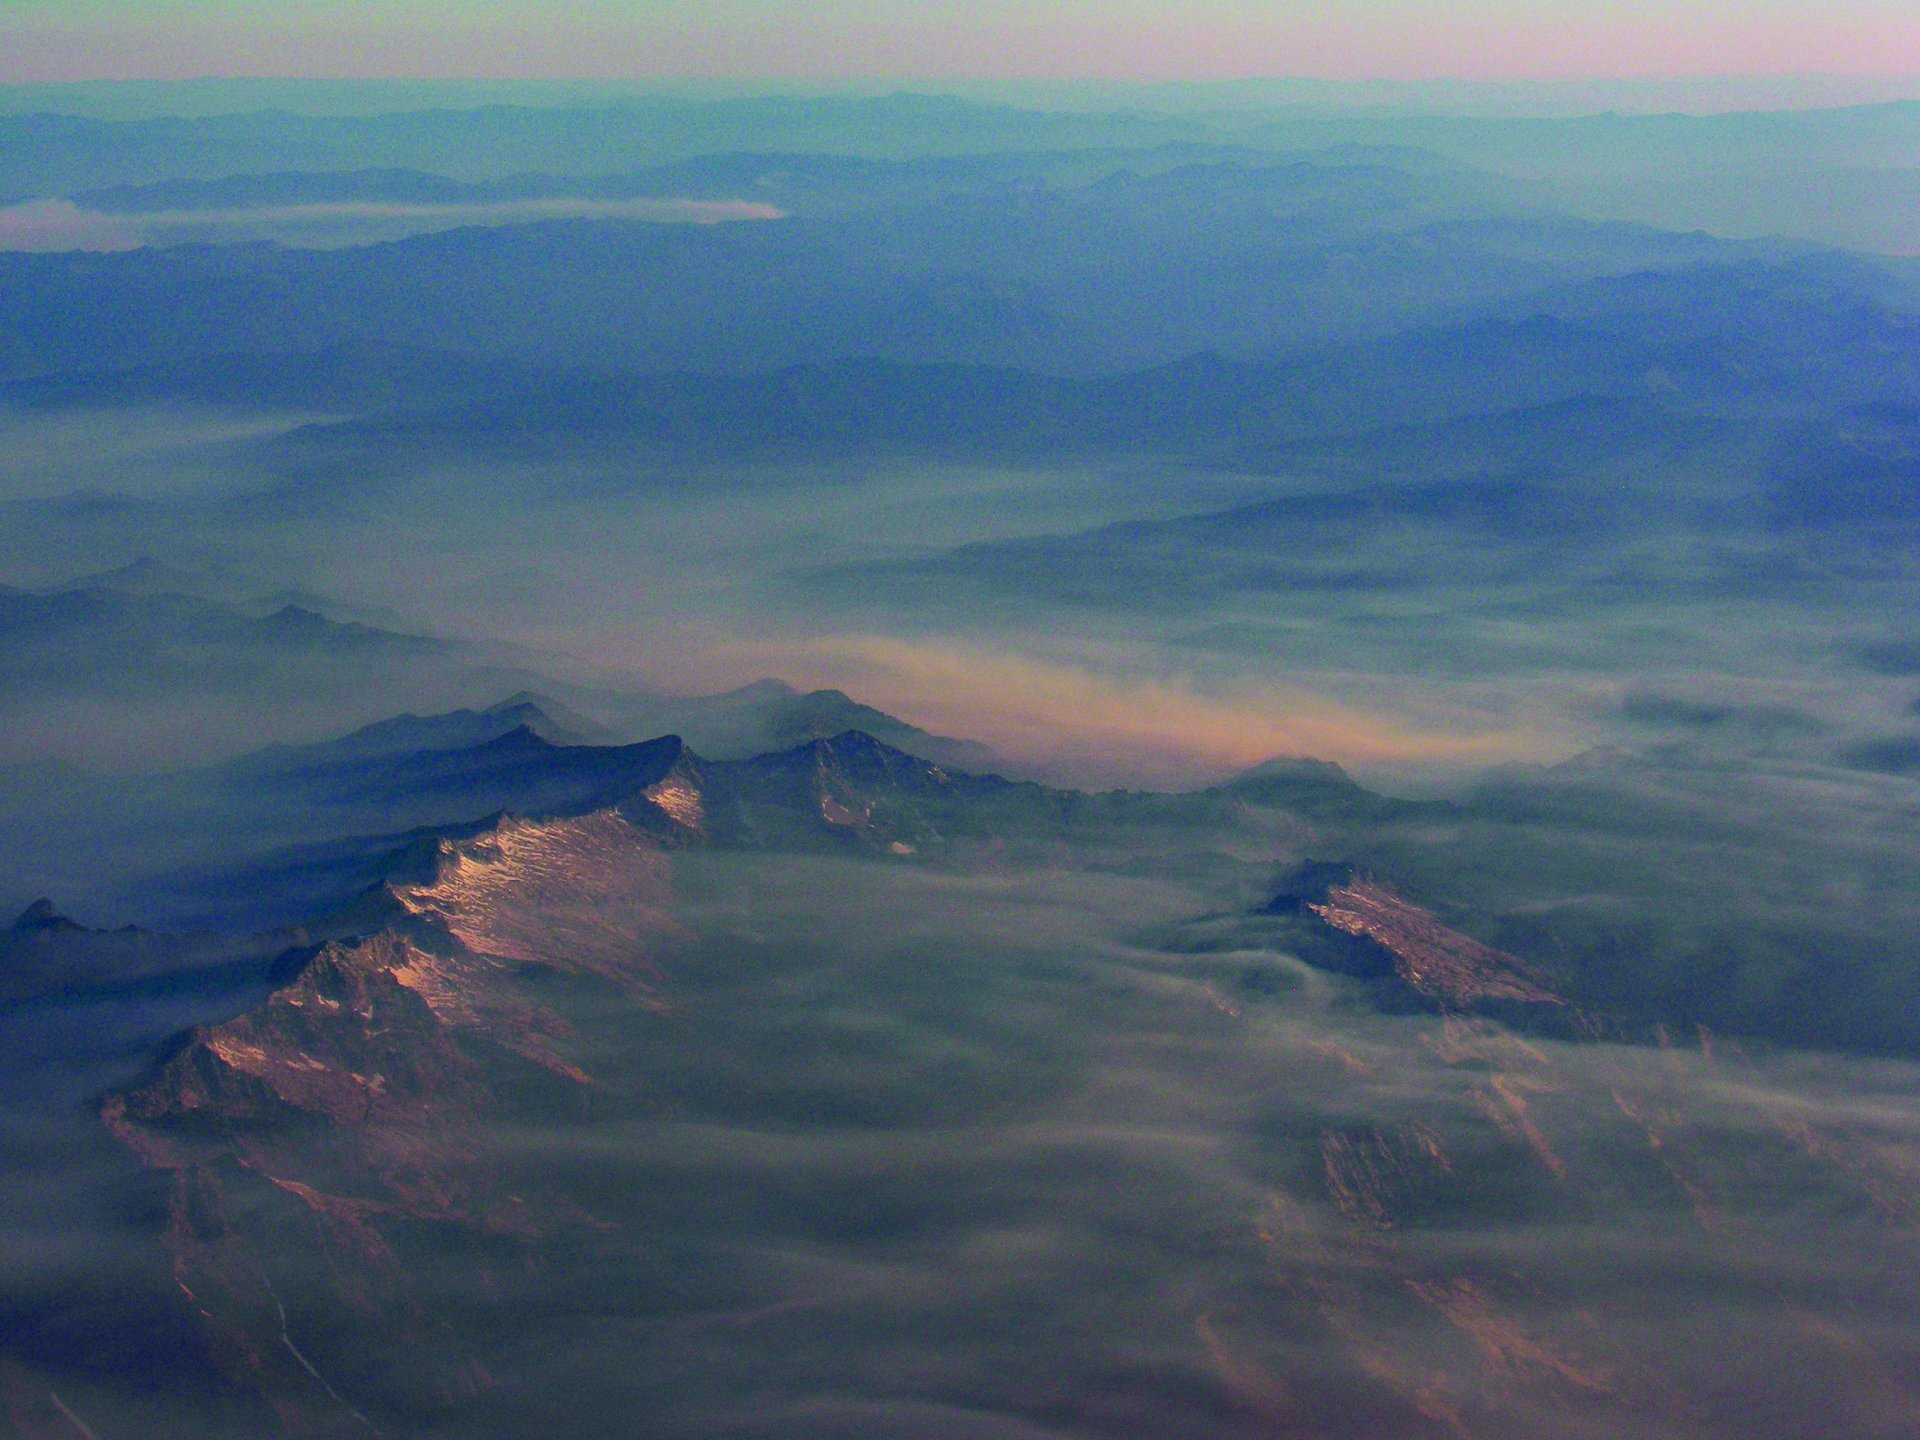 Smoke blankets California mountains on July 11, 2015 | Photo by Mike Kelly